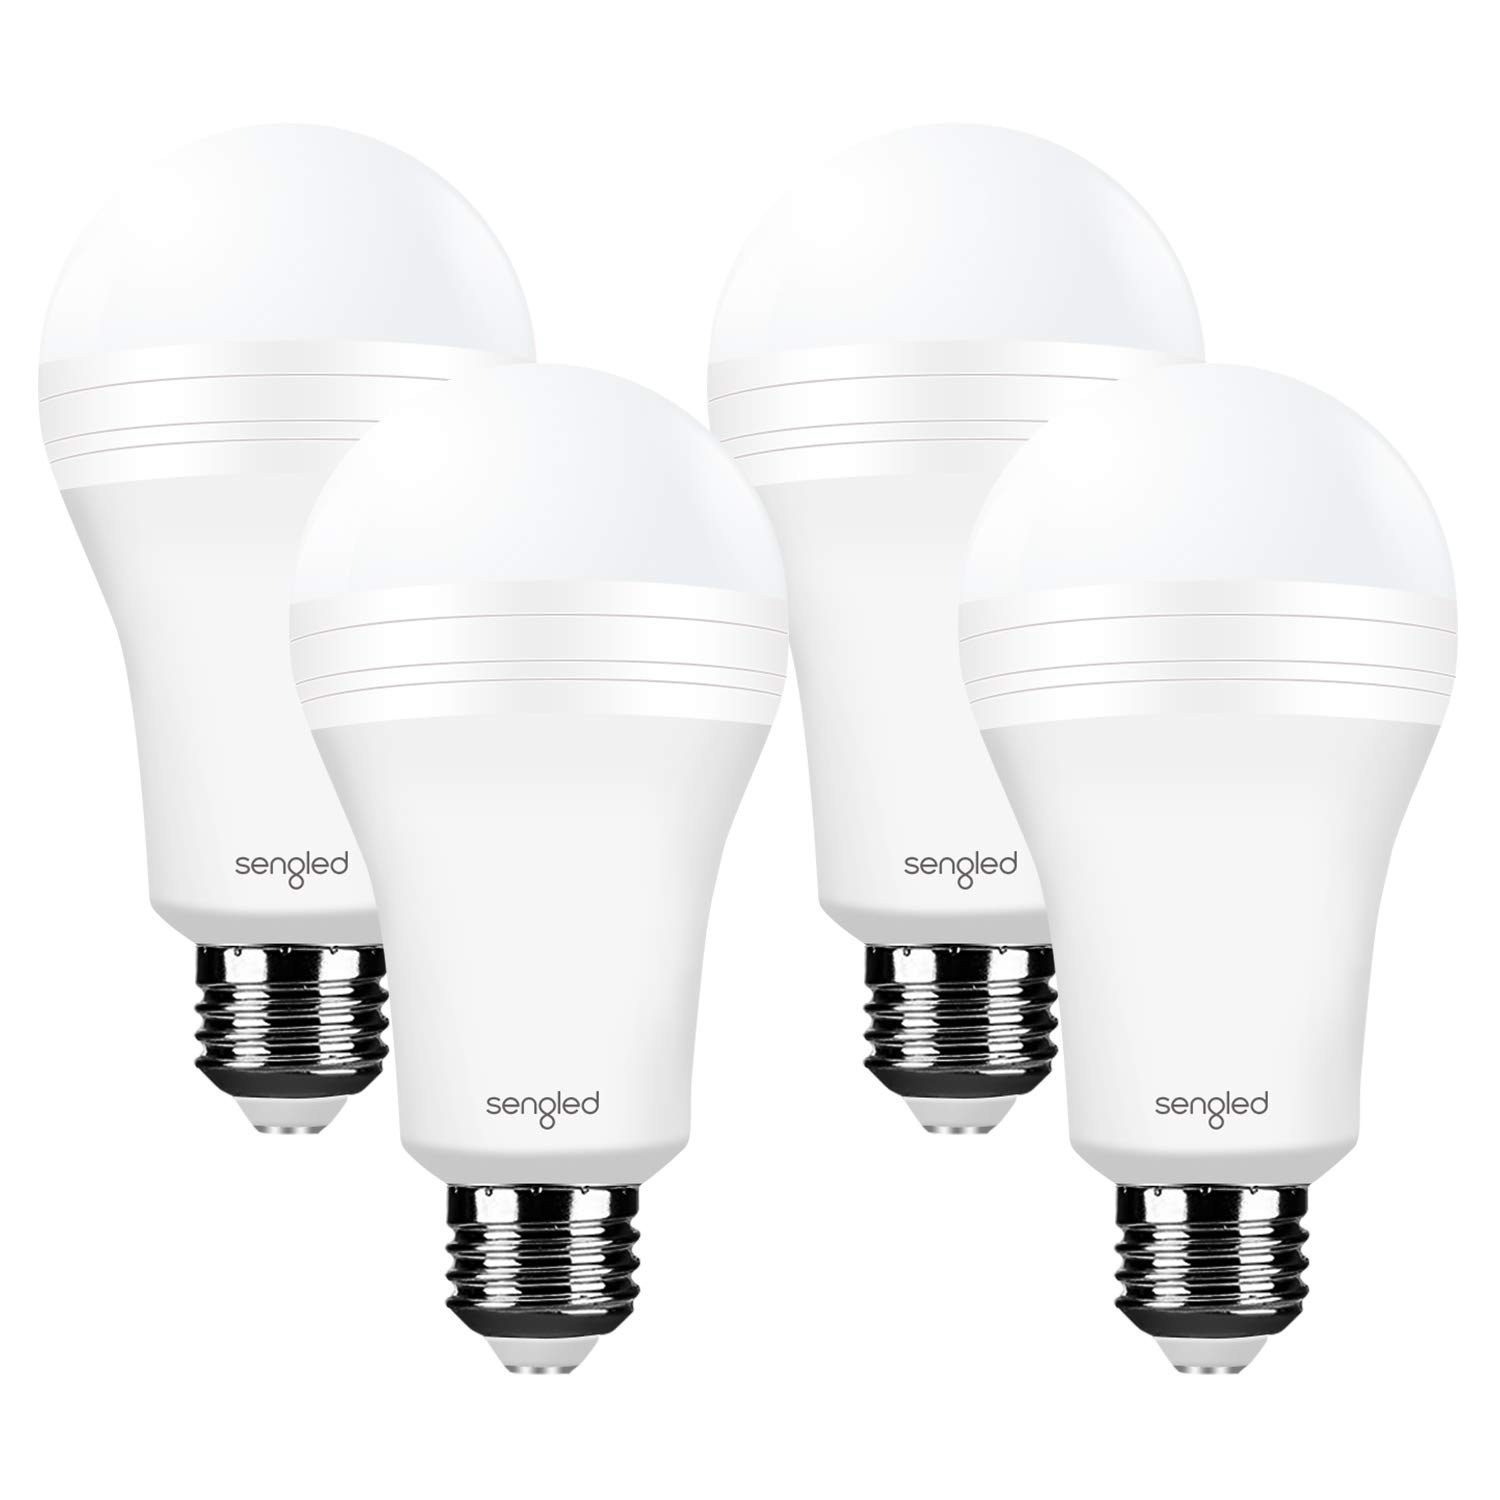 Sengled Everbright Rechargeable Light Bulb Battery Backup Power Outage Emergency Light for Home up to 3.5 Hours Flashlight 3000K Warm White A19 40W Equivalent LED Bulbs, 4 Pack